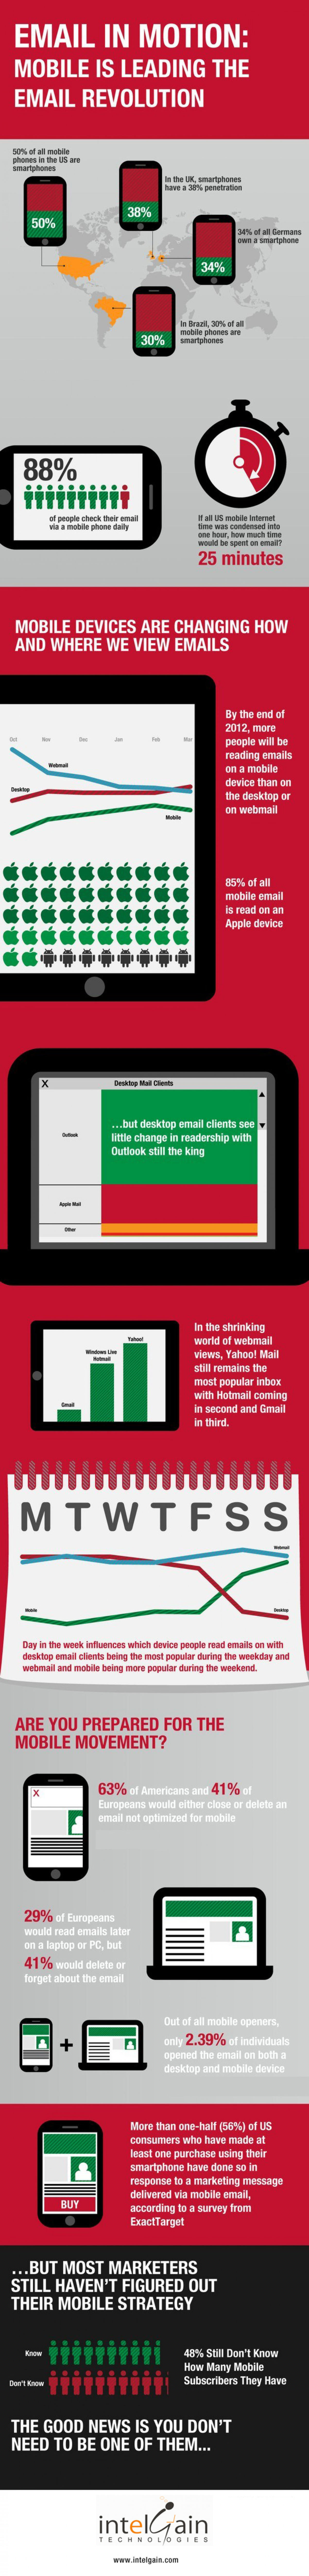 E-Mail In Motion: Mobile Is Leading The E-Mail Revolution Infographic